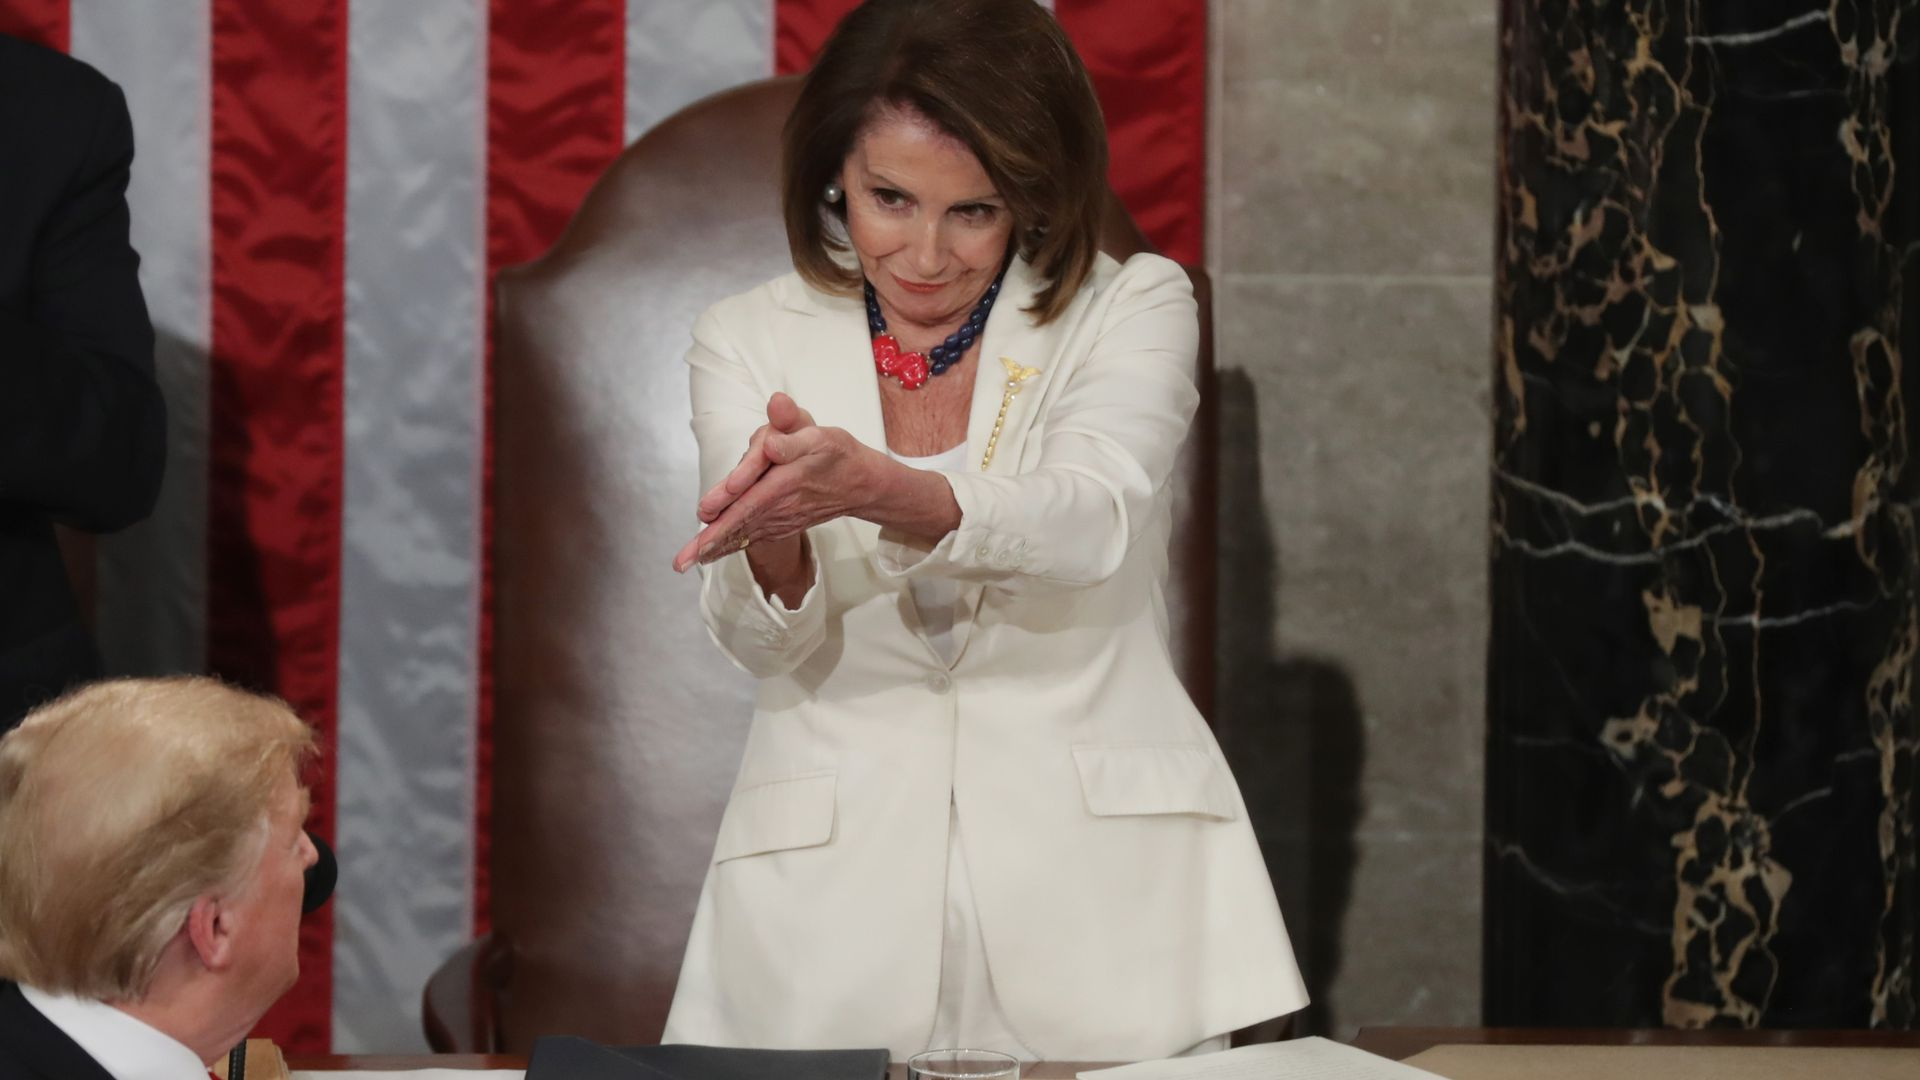 Instant classic from this year's State of the Union (Photo: Chip Somodevilla/Getty Images)